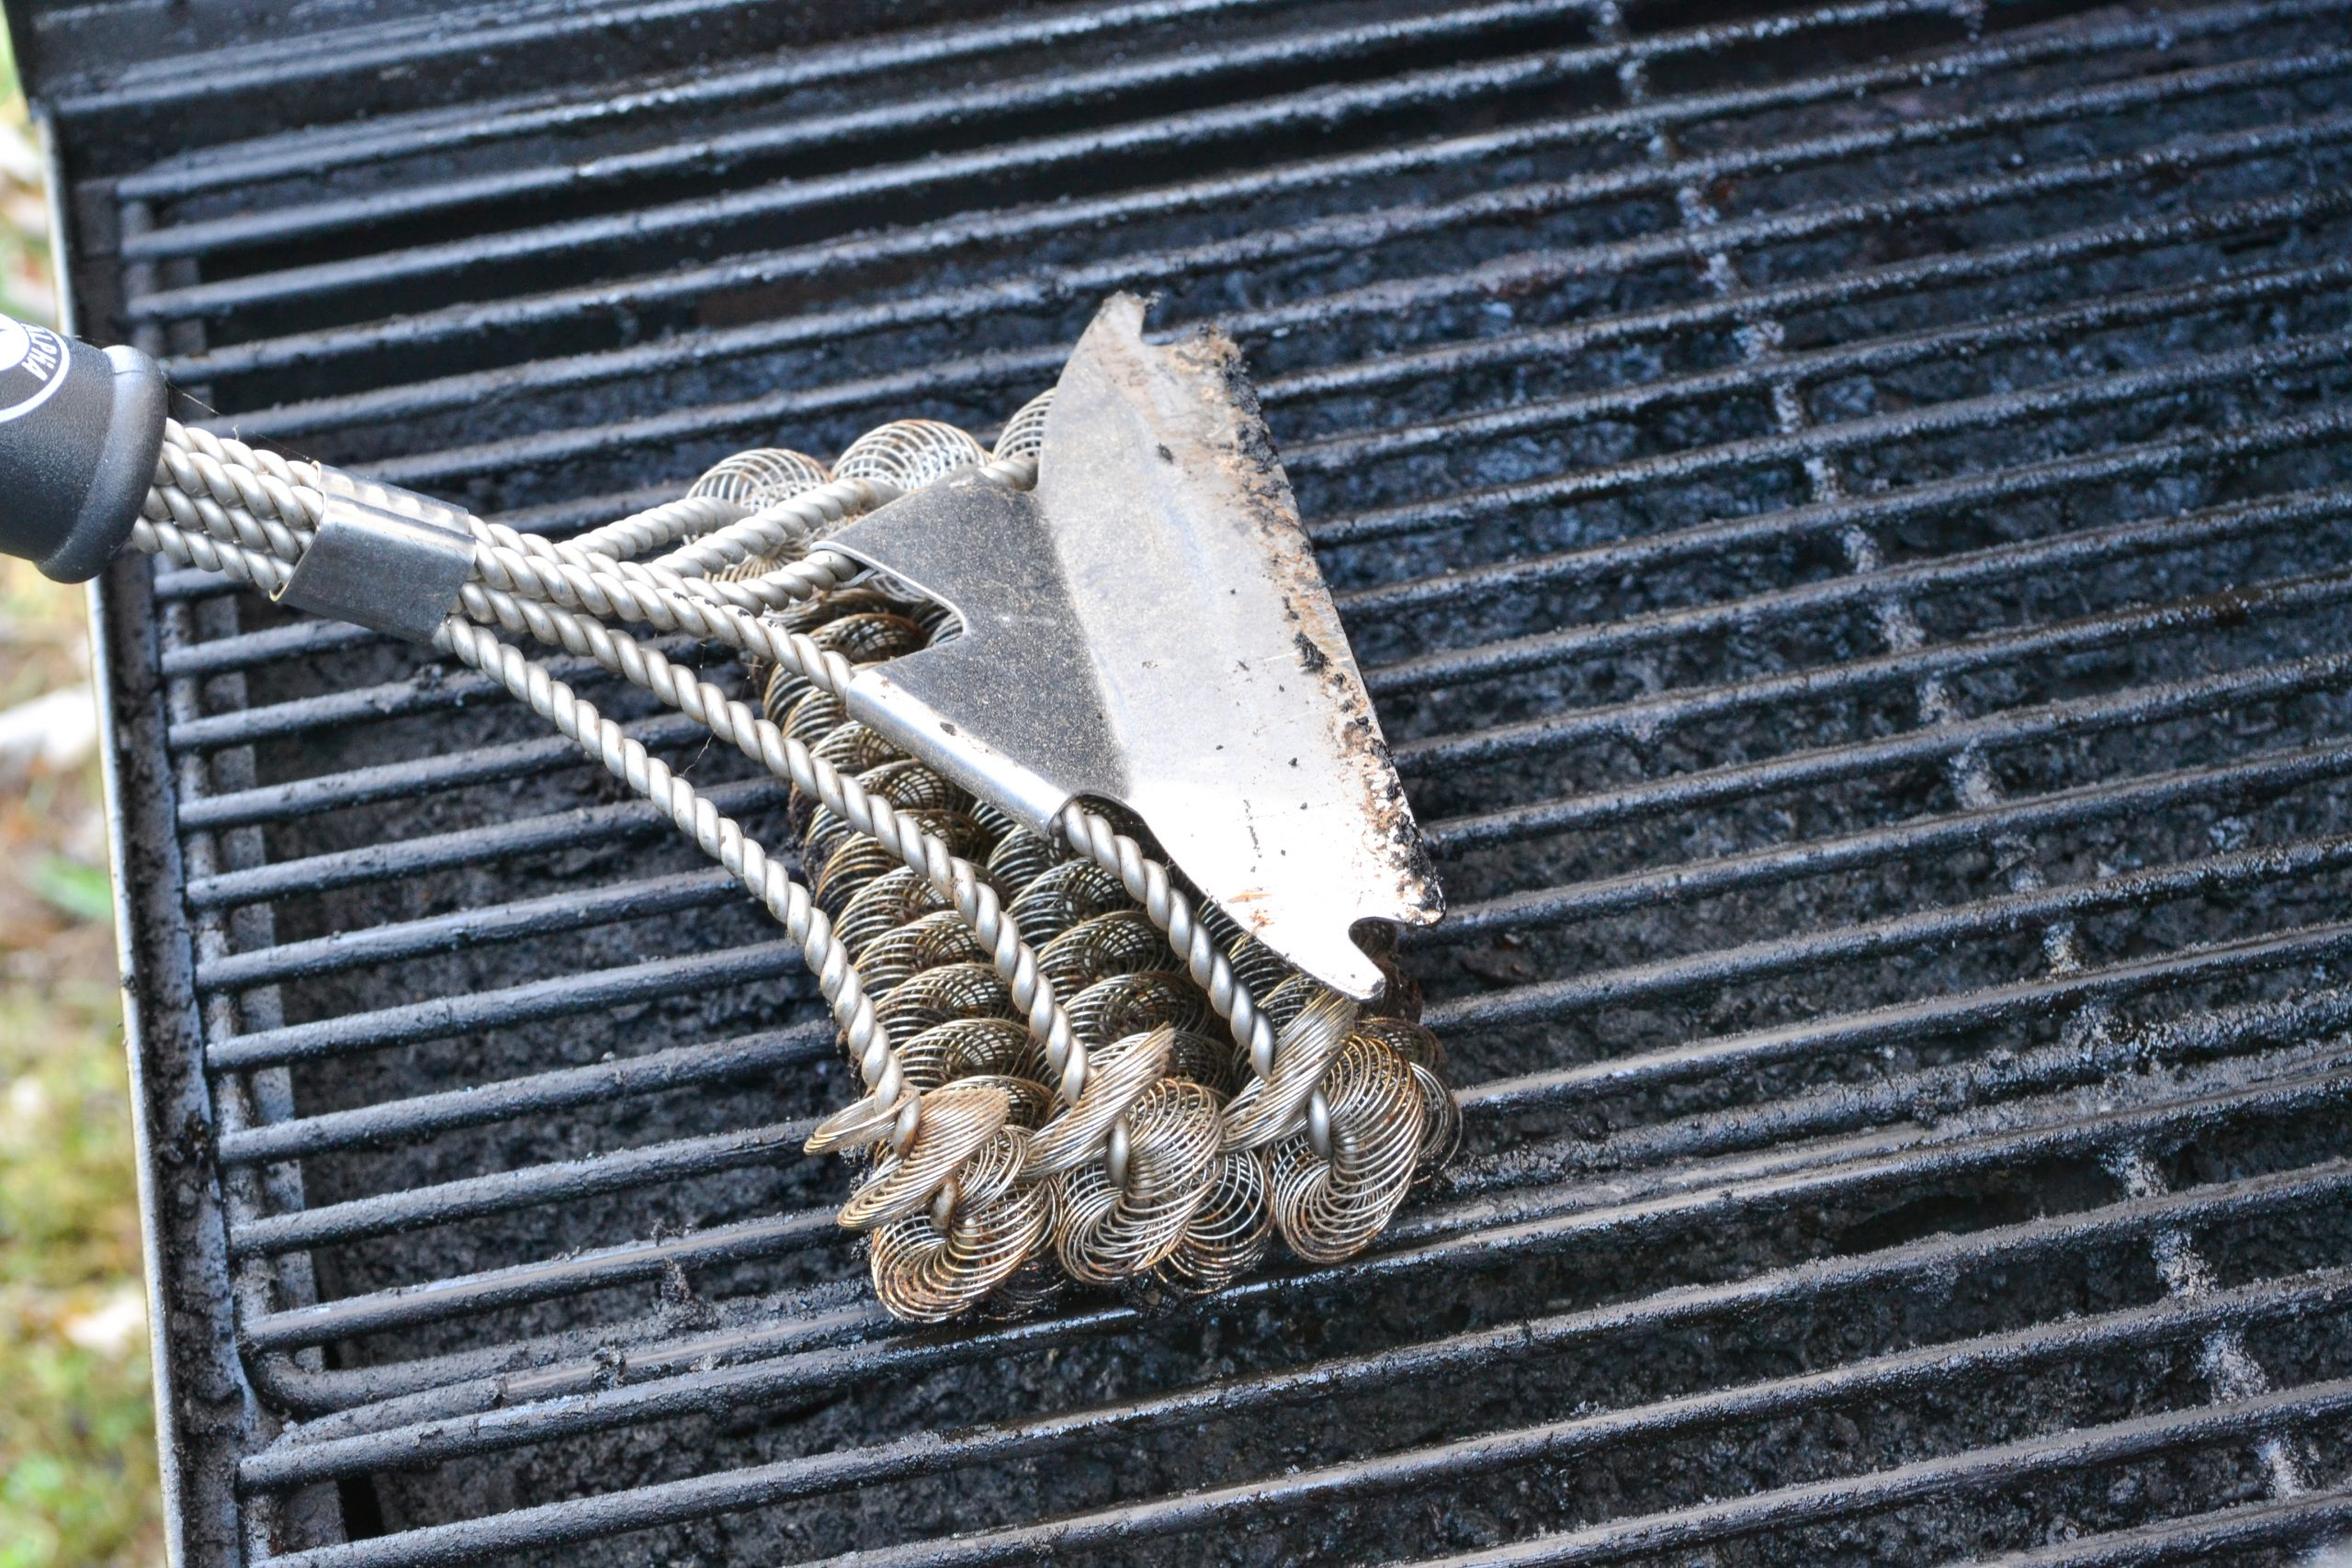 cleaning a pellet grill